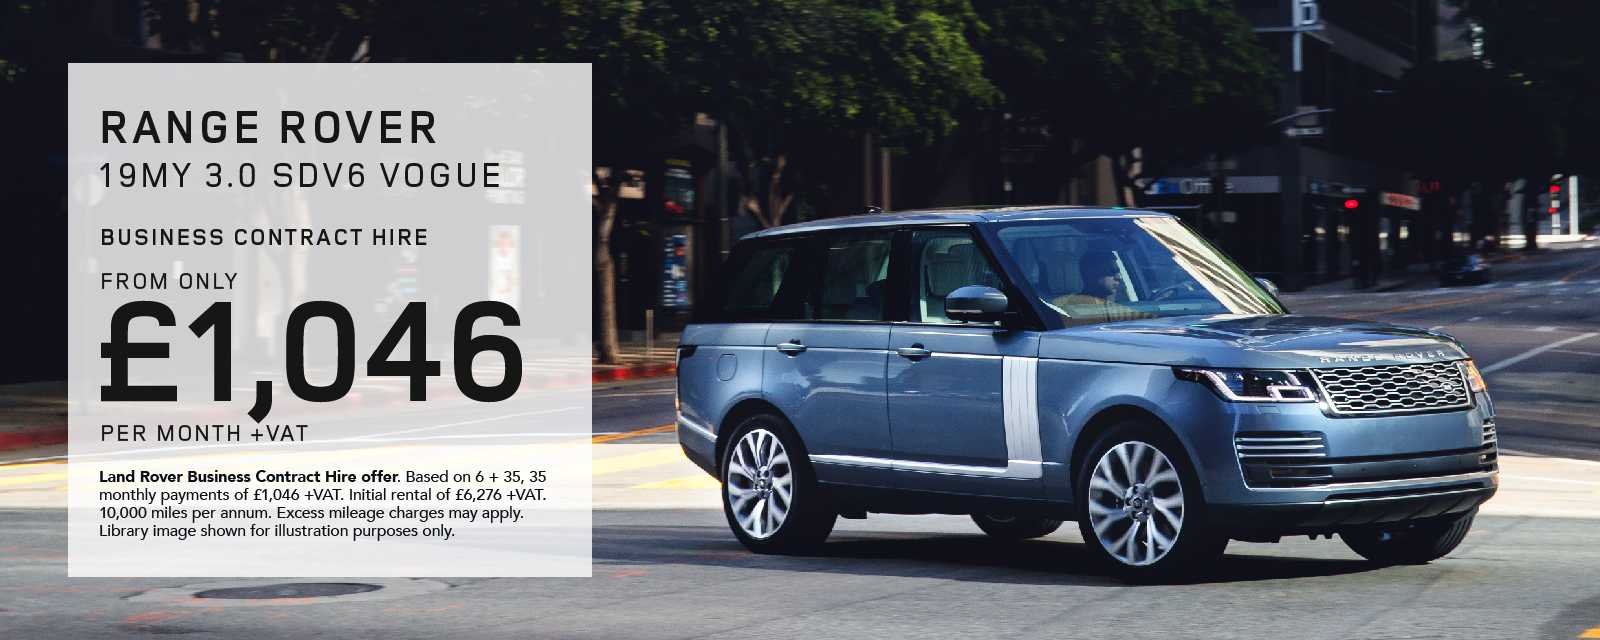 Range Rover Business Contract Hire Offer